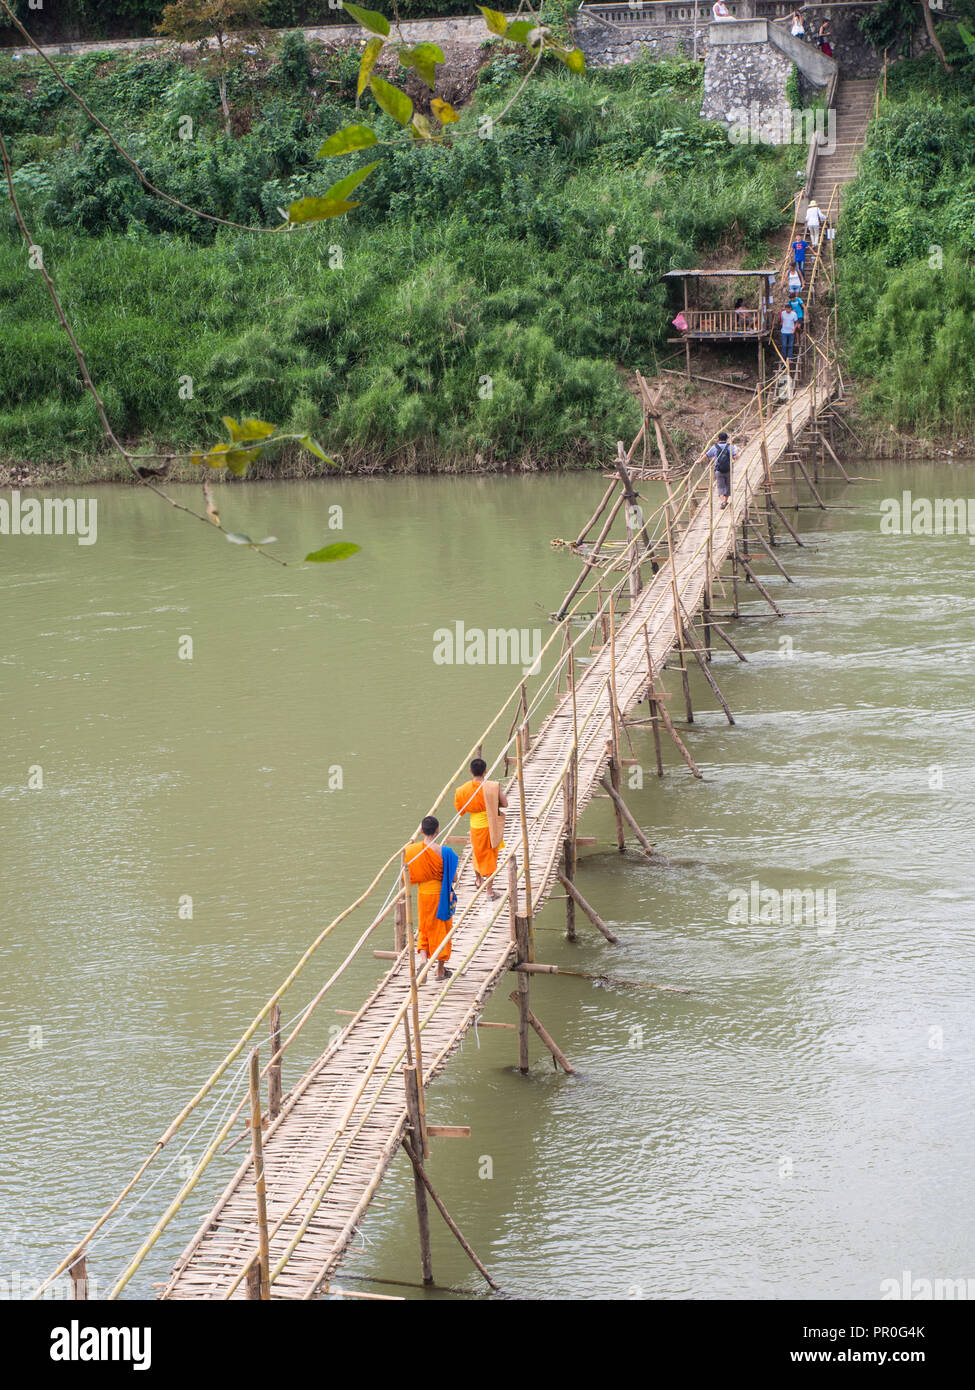 Orange-clad Buddhist monks crossing a bamboo bridge, Luang Prabang, Laos, Indochina, Southeast Asia, Asia - Stock Image